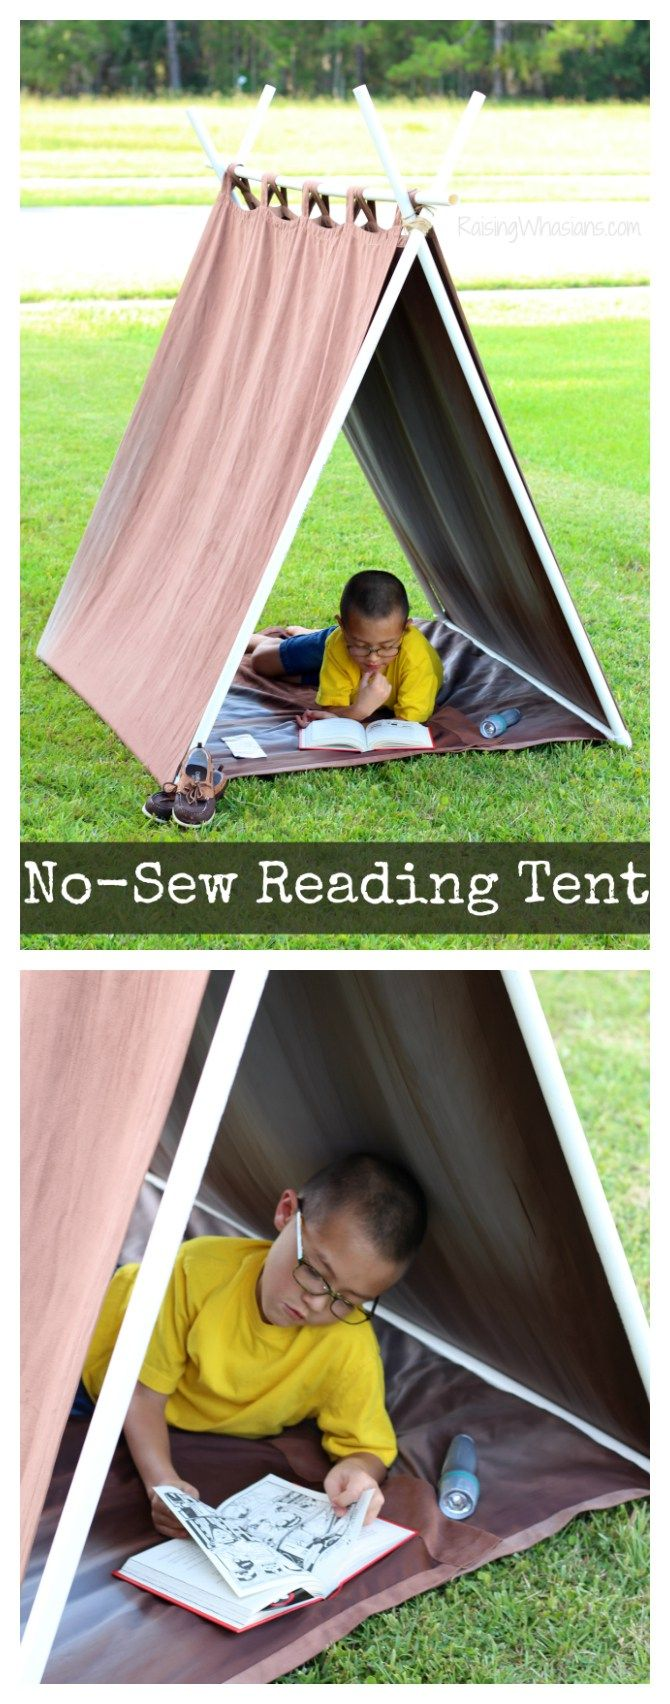 DIY No-Sew Reading Tent for Kids | Teepee inspired tent, perfect for summer reading! Made in minutes for under $20 (AD)